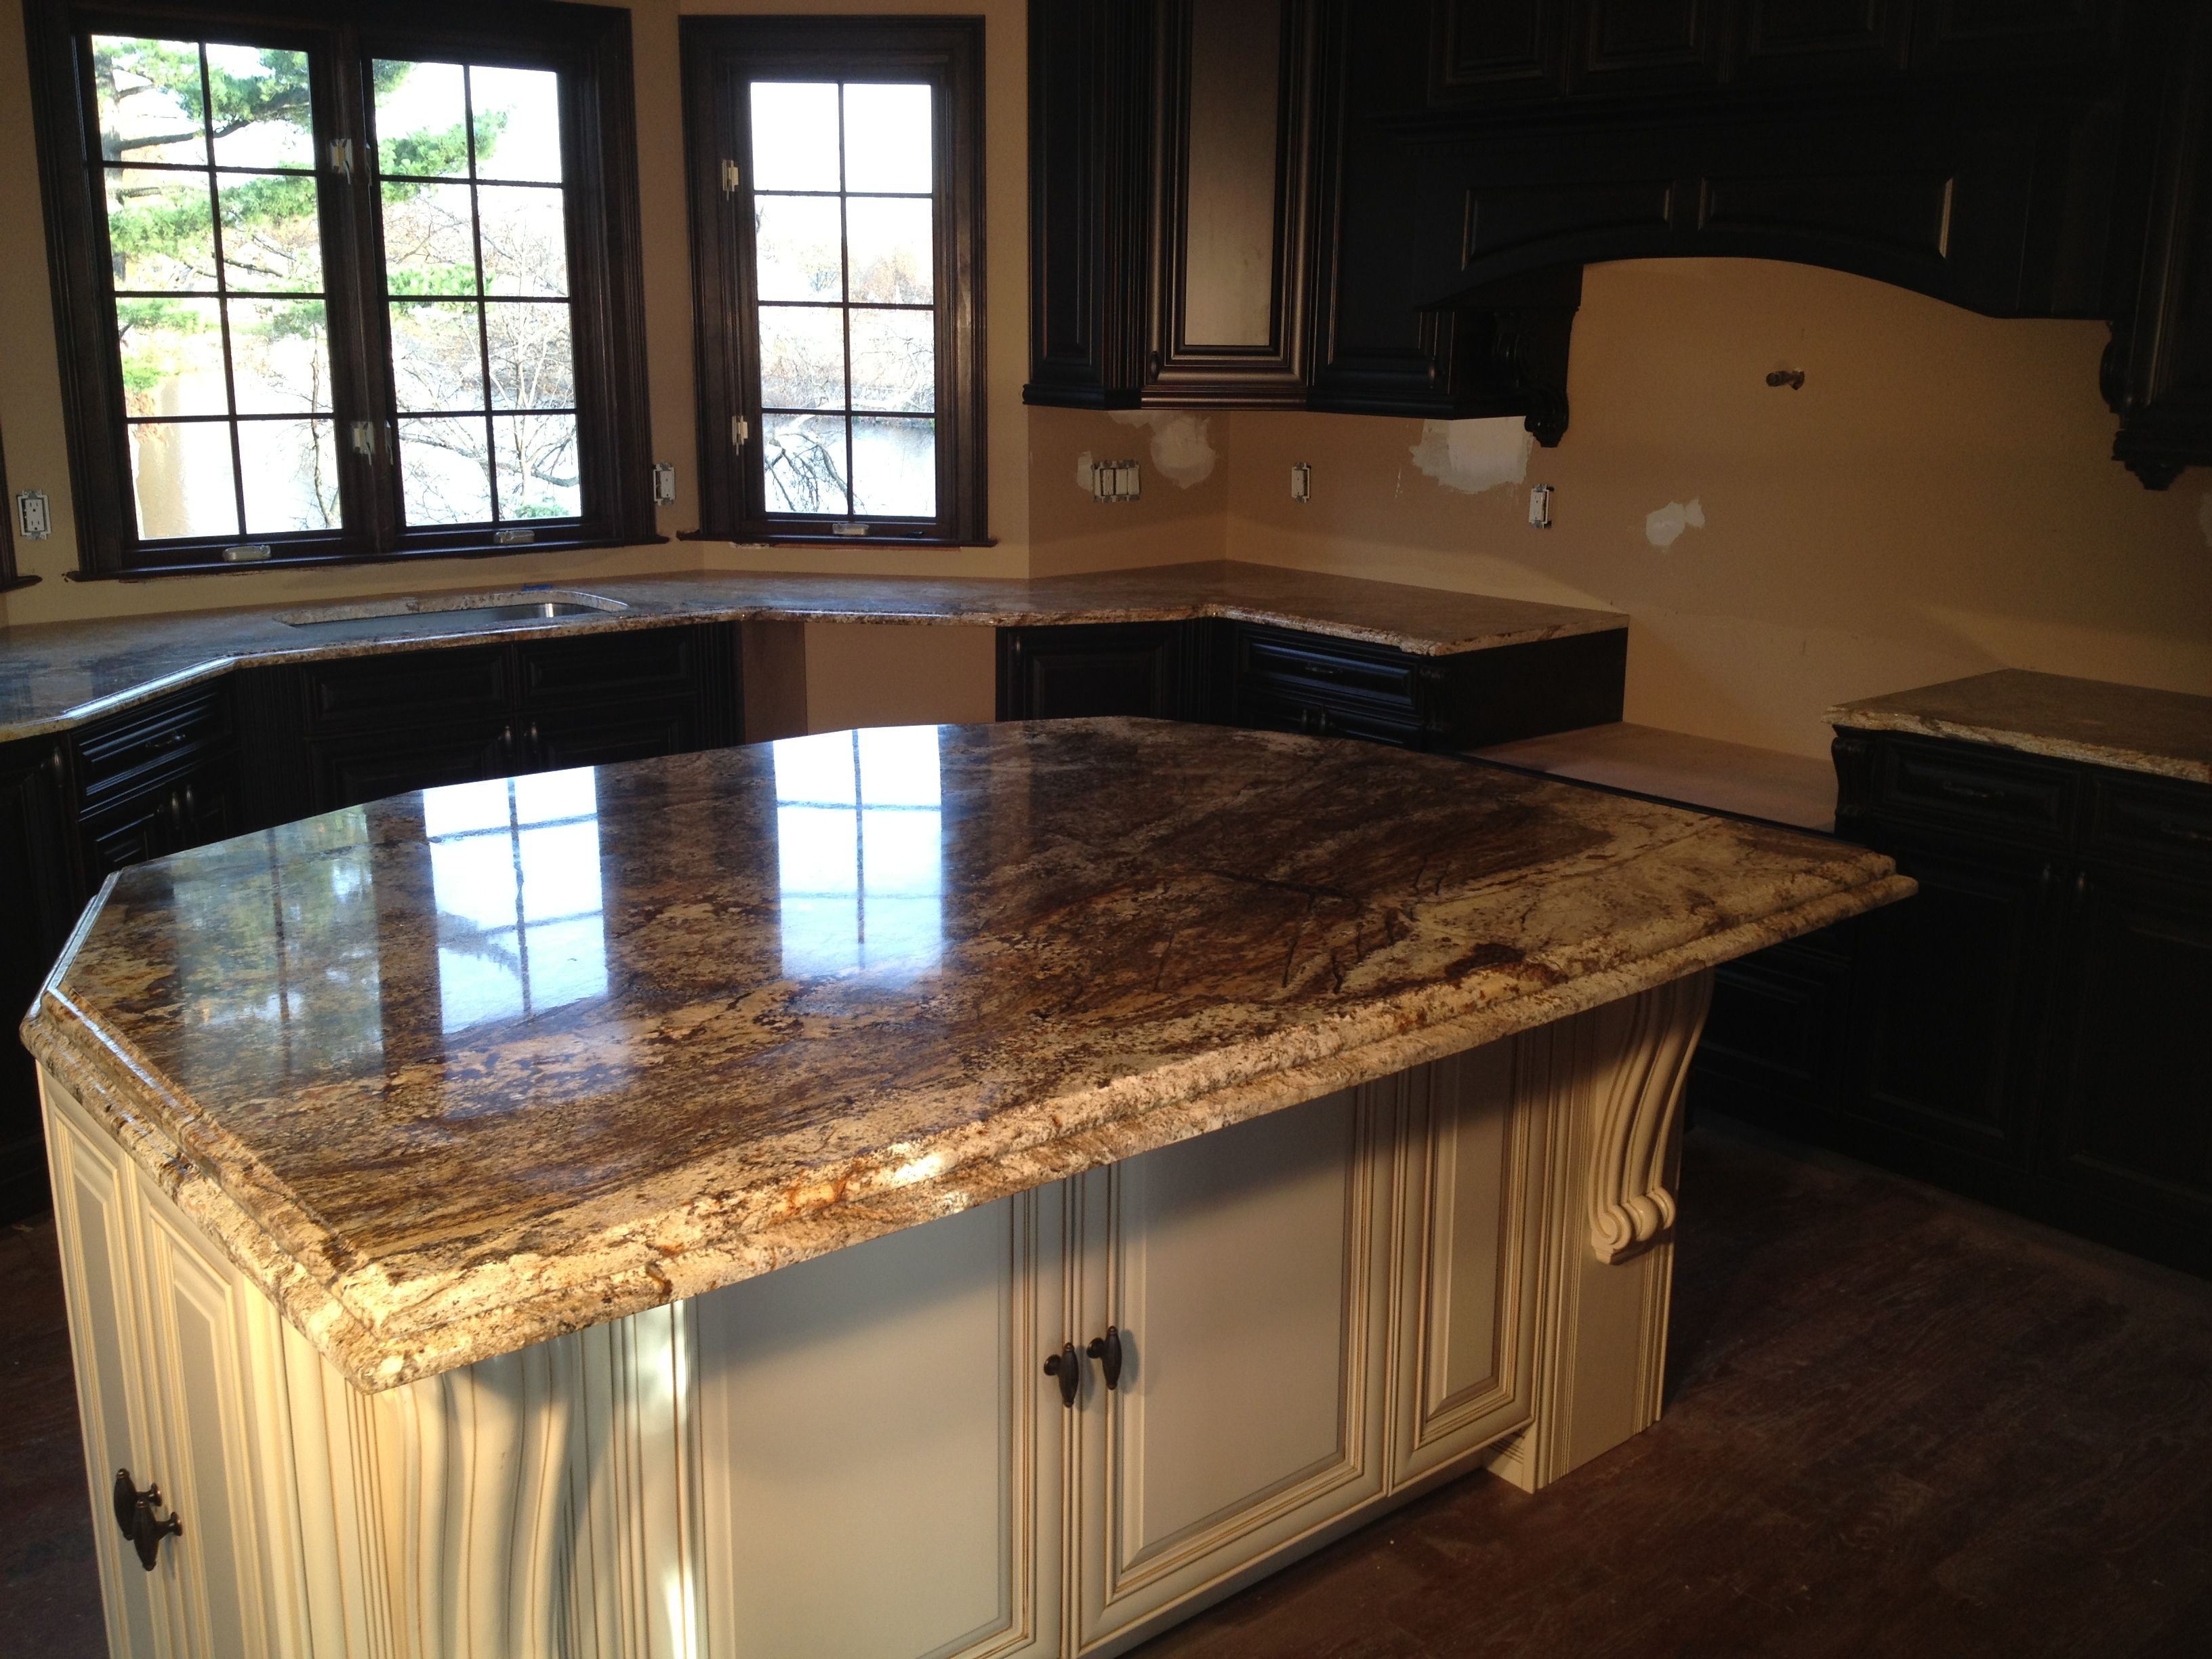 Brown Granite Counter : Aj brown granite countertop innovate stones kitchen and